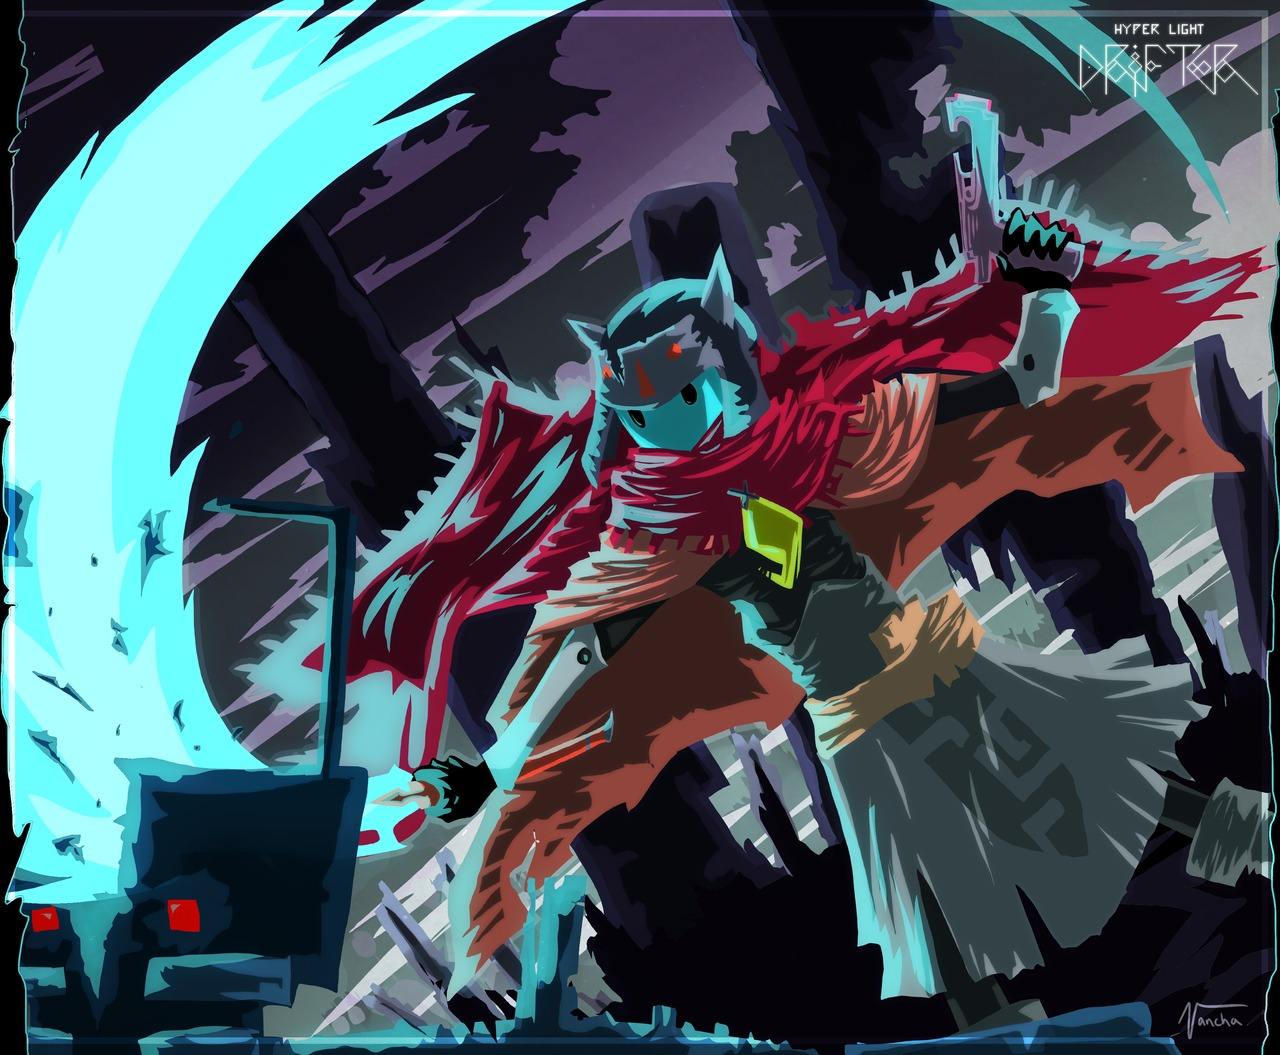 hyper_light_drifter_by_vanchamarl-d6mlifj